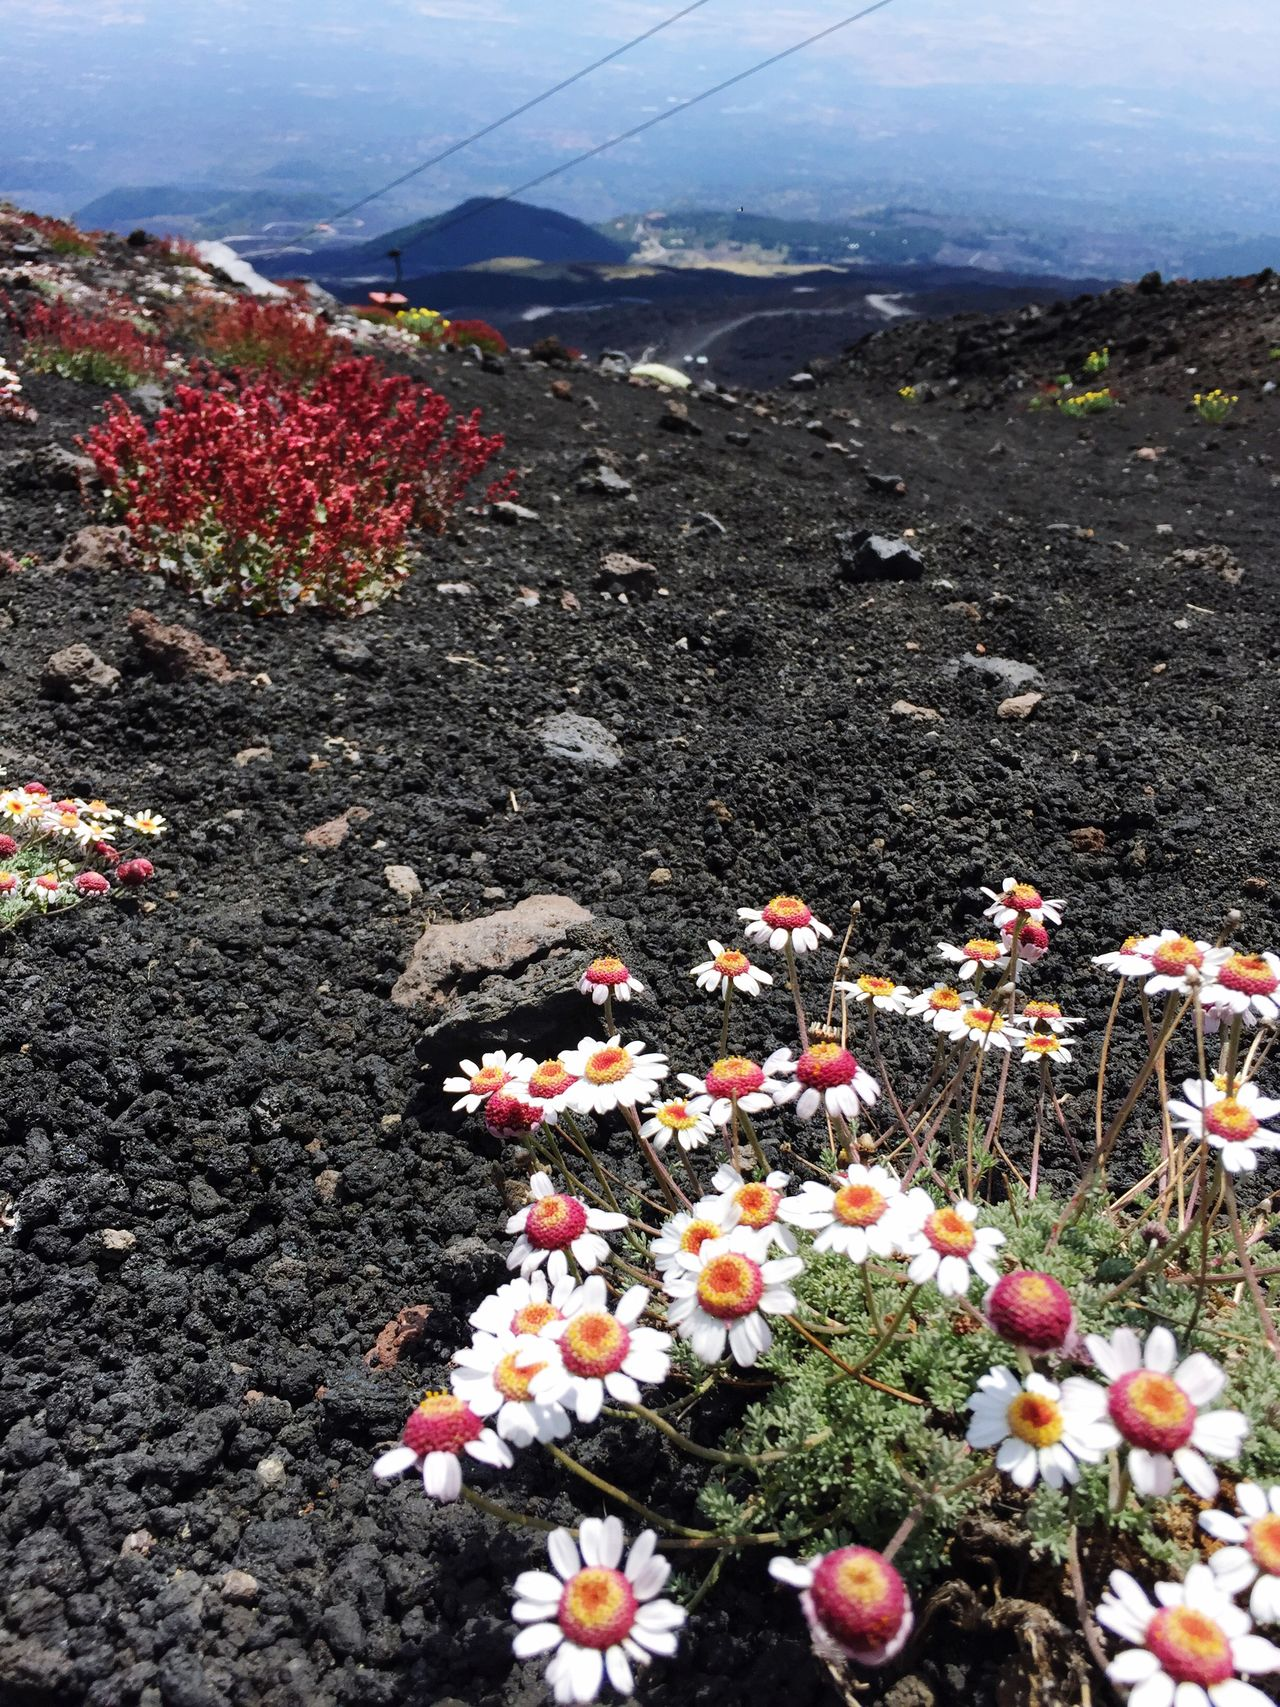 Sommergefühle summertime in Sicily, Etna volcano Flower Nature Day Beauty In Nature Outdoors No People Mountain Freshness Tranquility Plant Growth Fragility Close-up Flower Head Mountain Range Etna